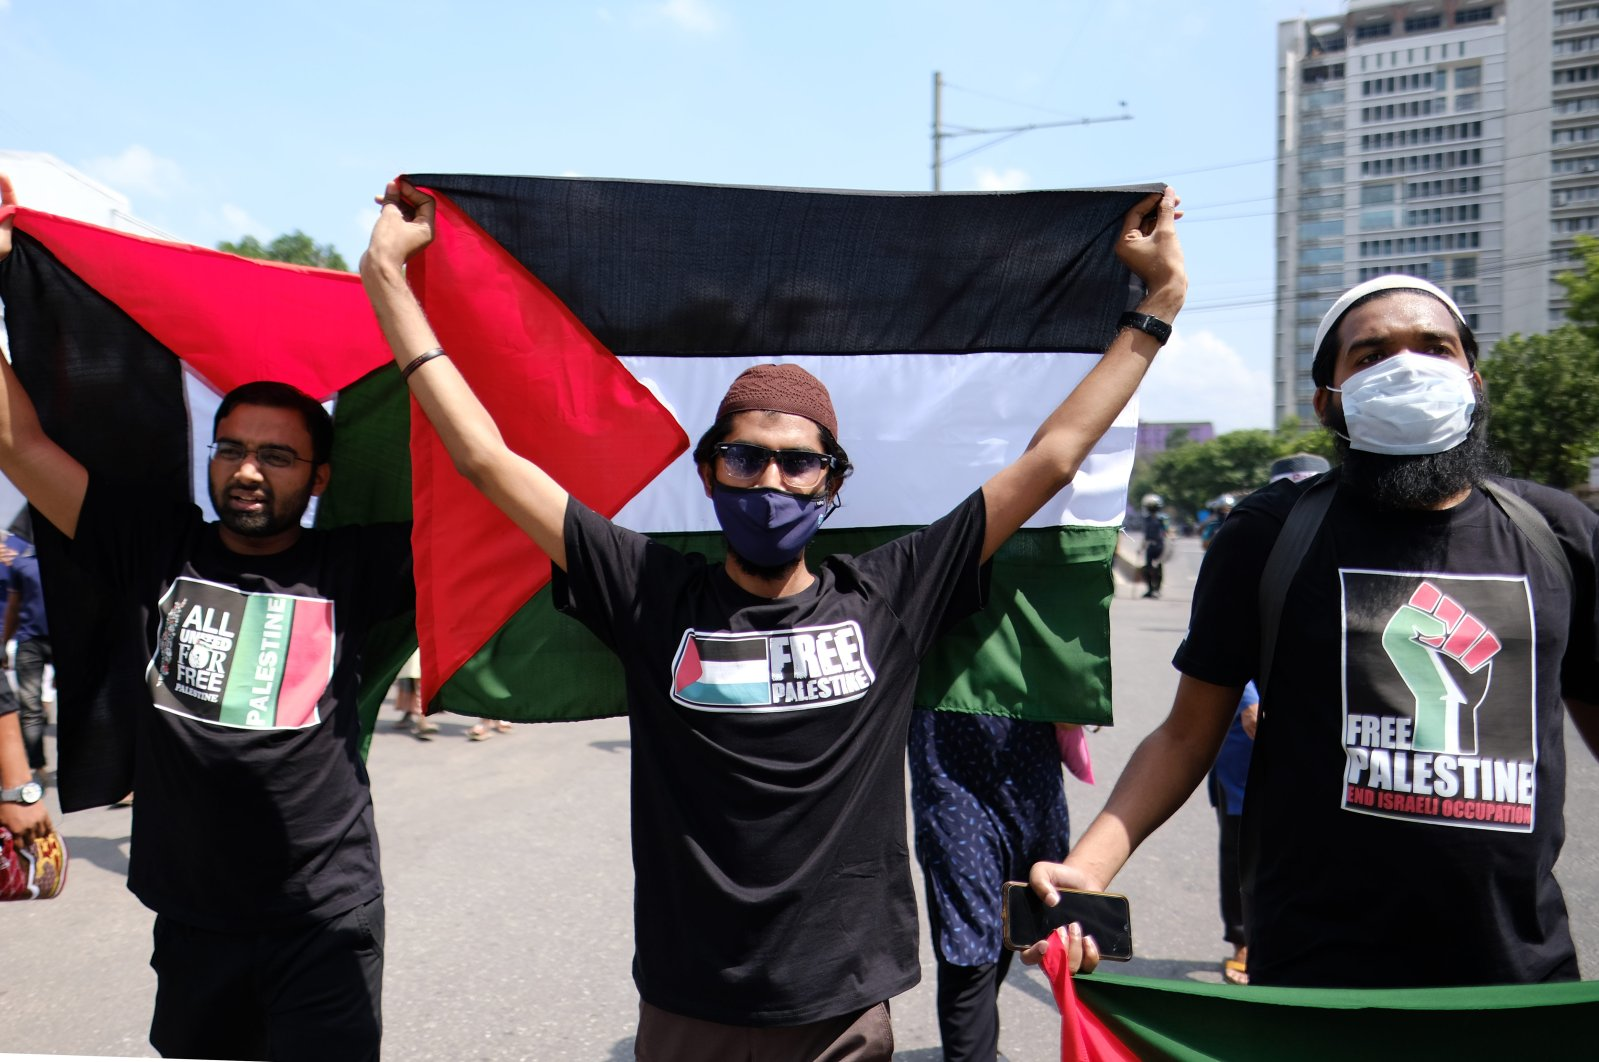 Bangladeshi men hold Palestinian flags as they participate in a protest against the Israeli attacks on Palestinians in Gaza, in Dhaka, Bangladesh, May 21, 2021. (AP Photo)